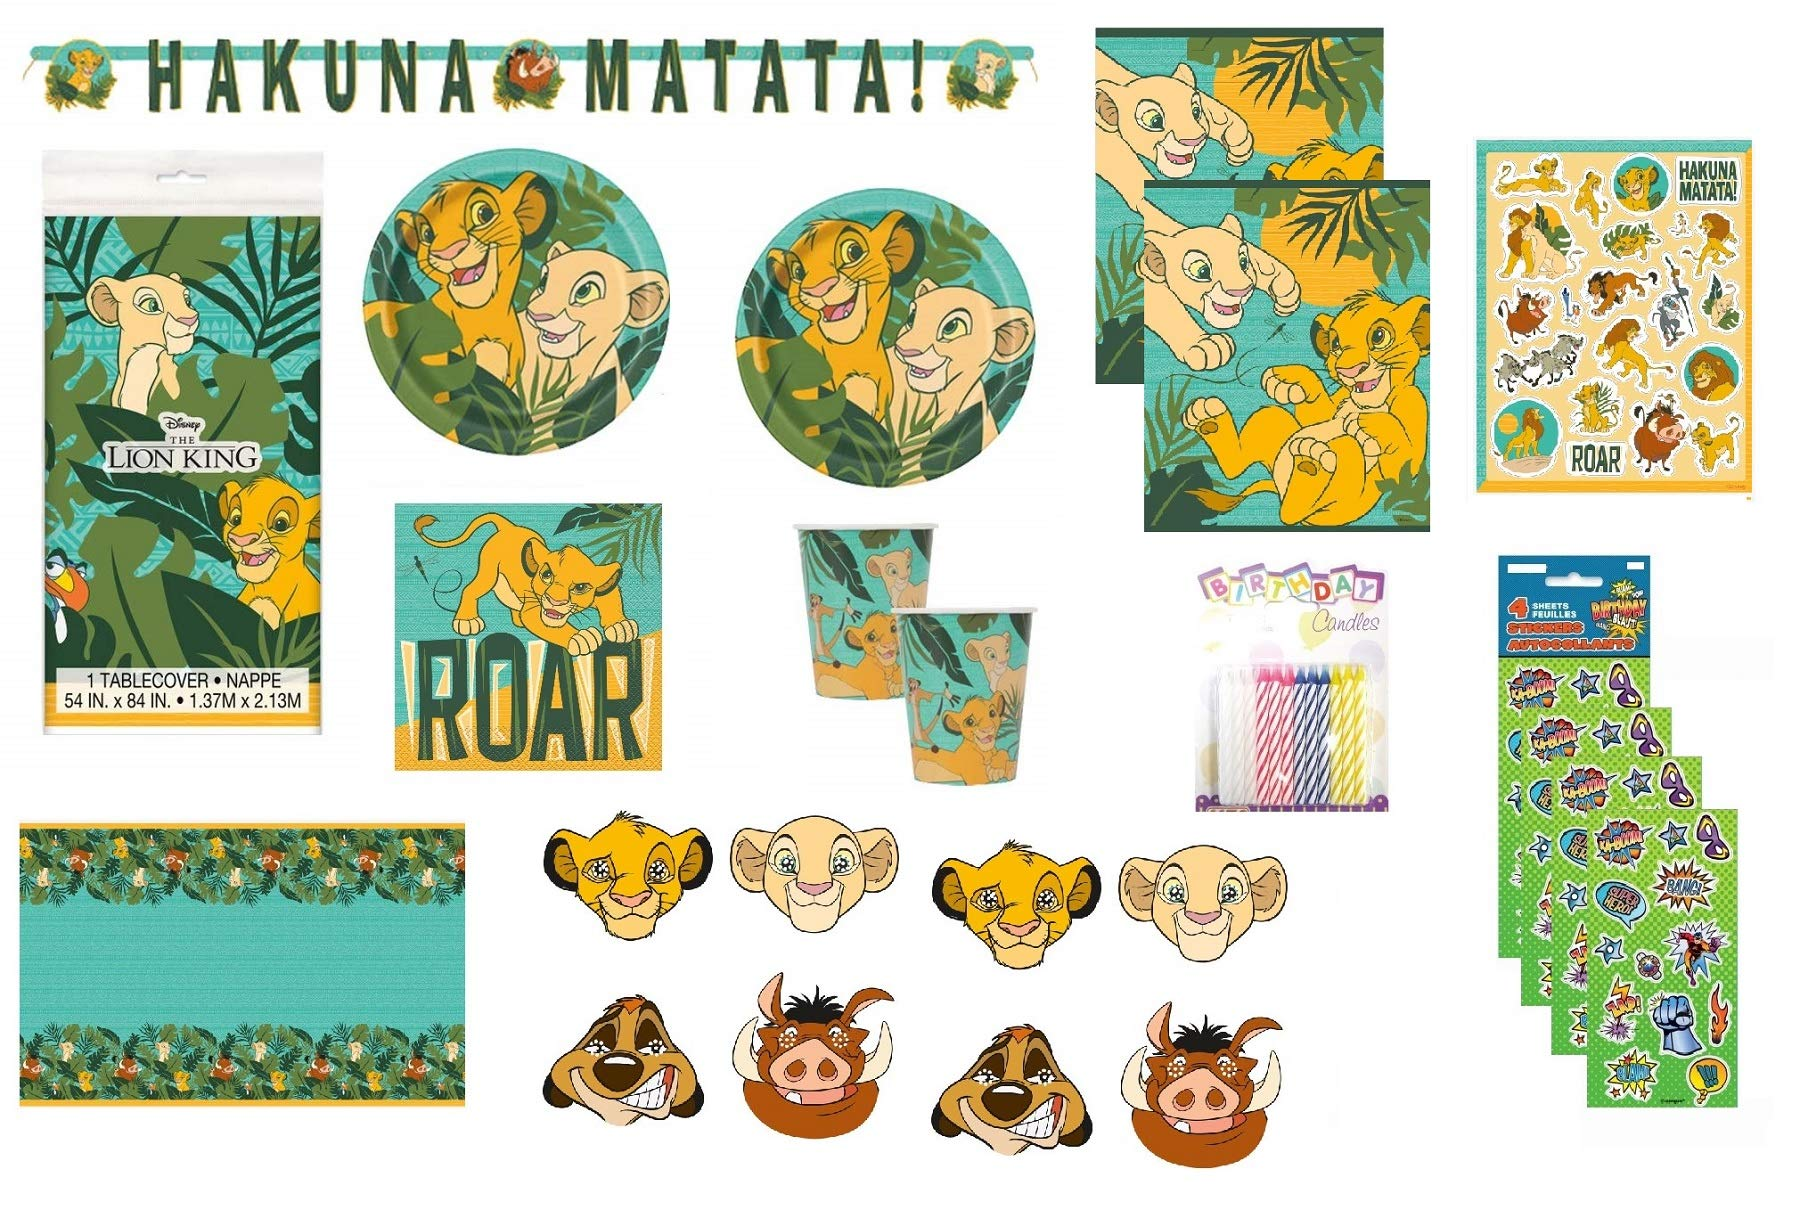 The Lion King Party Supply Bundle for 16 includes Plates, Napkins, Cups, Table Cover, Banner, Loot Bags, Masks, Stickers, Candles